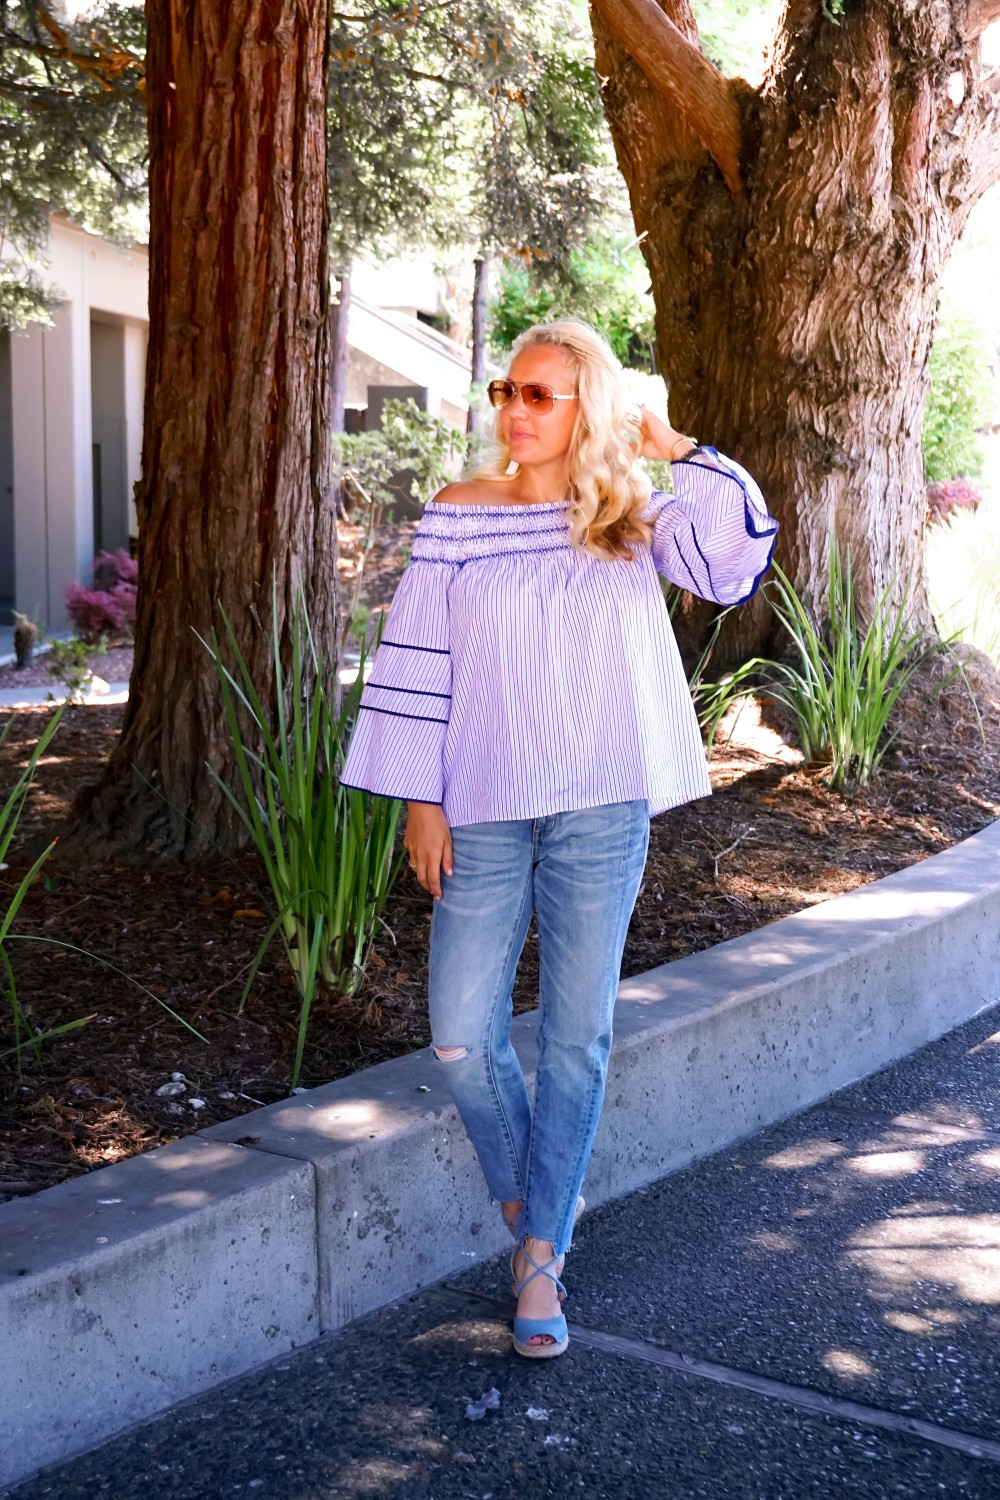 Striped Off-The-Shoulder Poplin Blouse-Parker New York-Summer Style-Outfit Inspiration-Have Need Want-Skinny Boyfriend Jeans-Espadrille Wedges 8